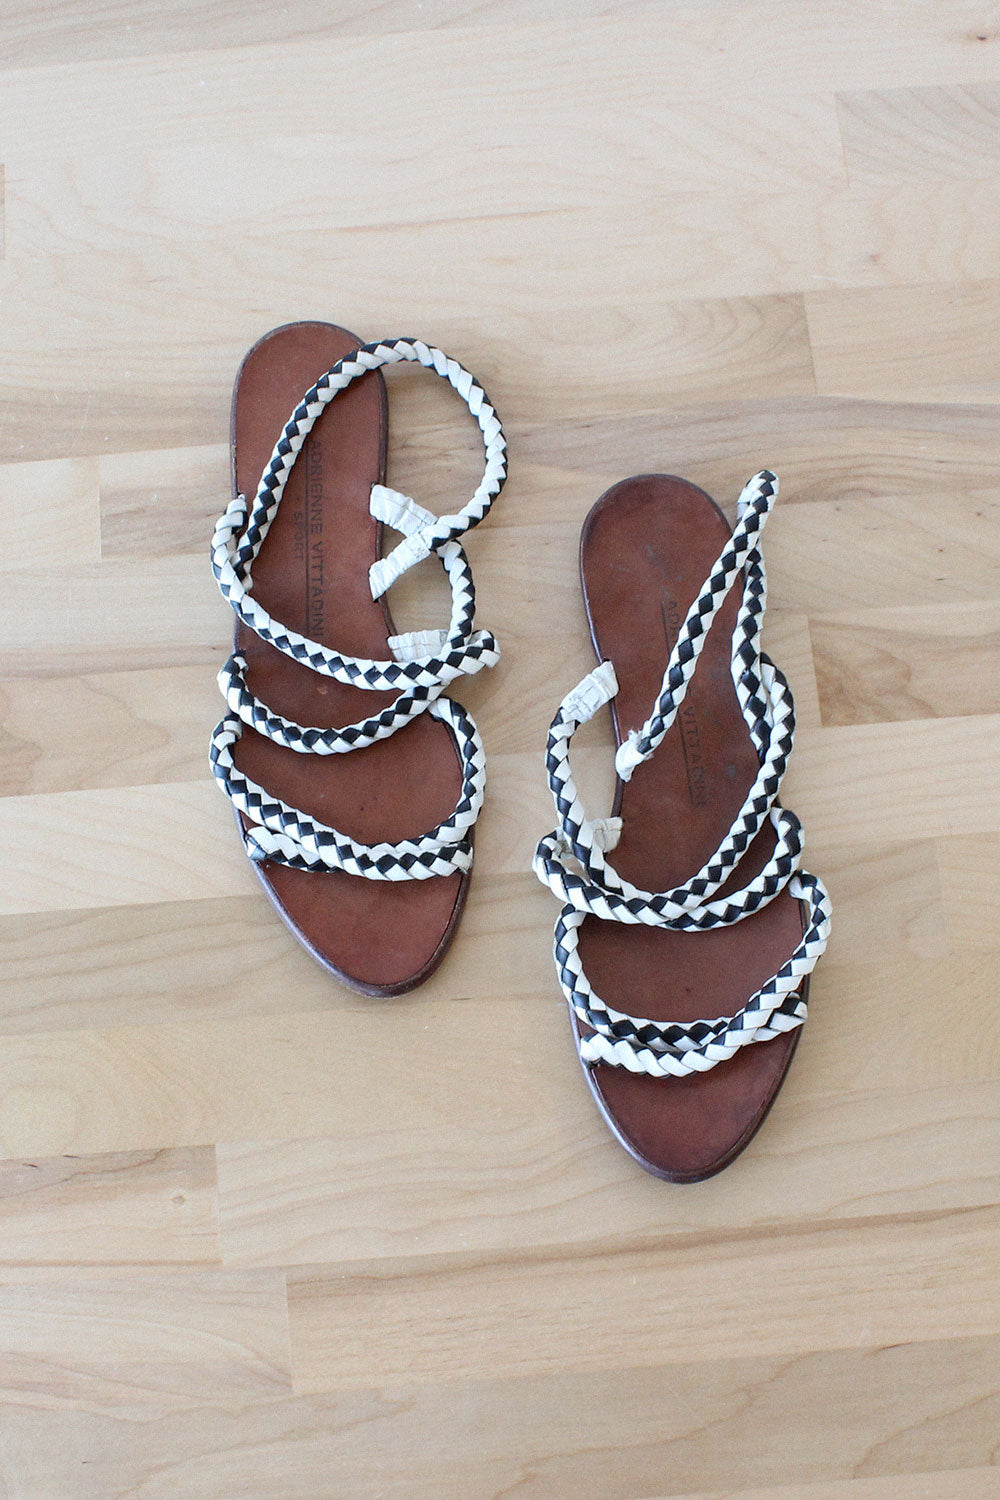 Vittadini Leather Rope Sandals 7 1/2-8